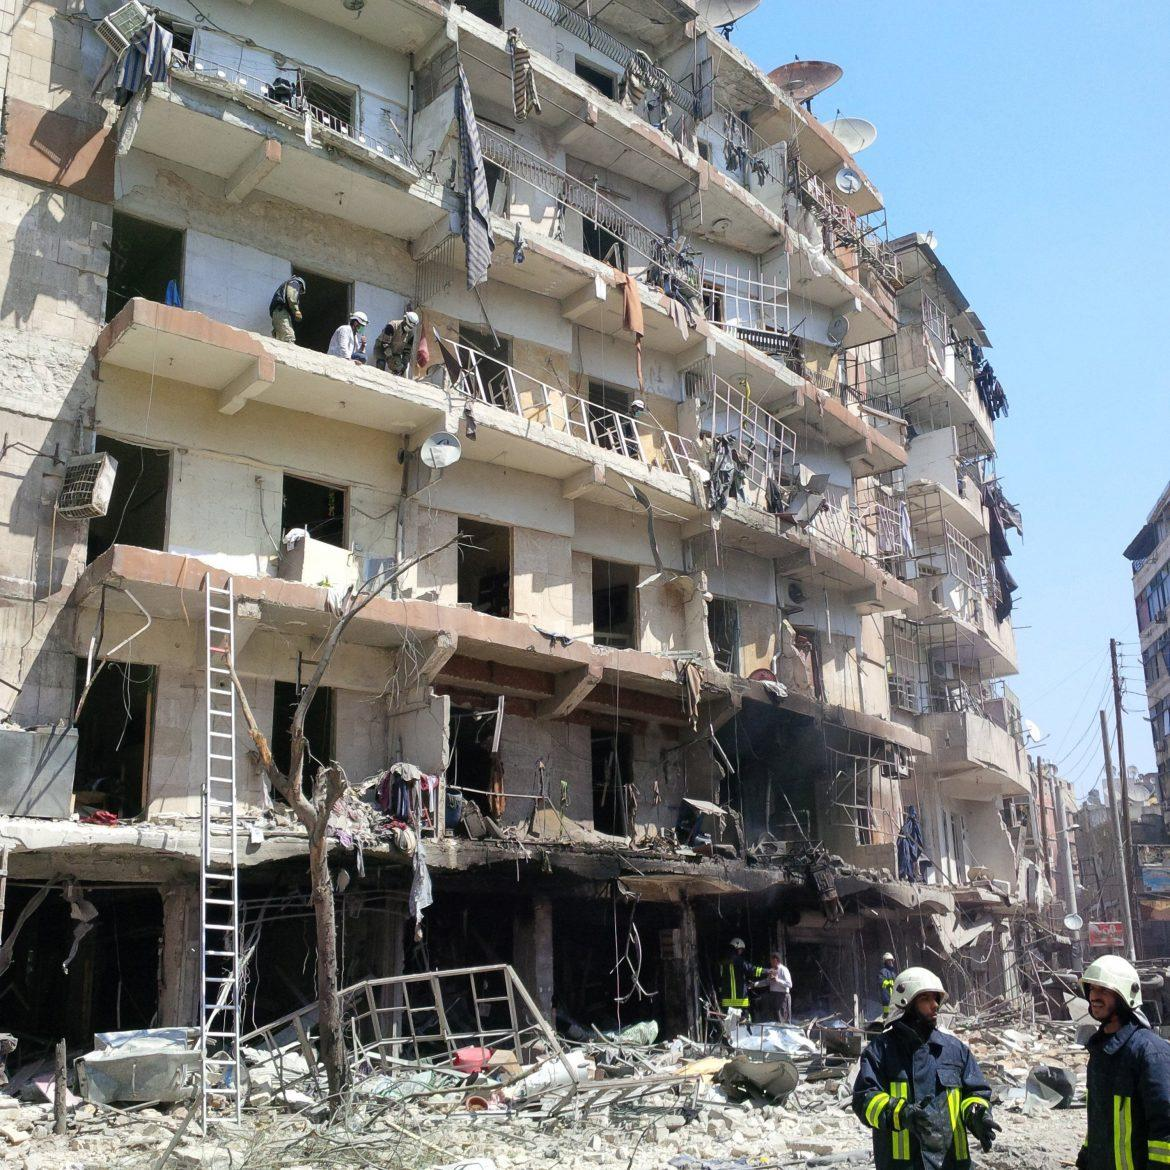 A+syria+building+pictured%2C+partailly+distroyed+by+the+bombing